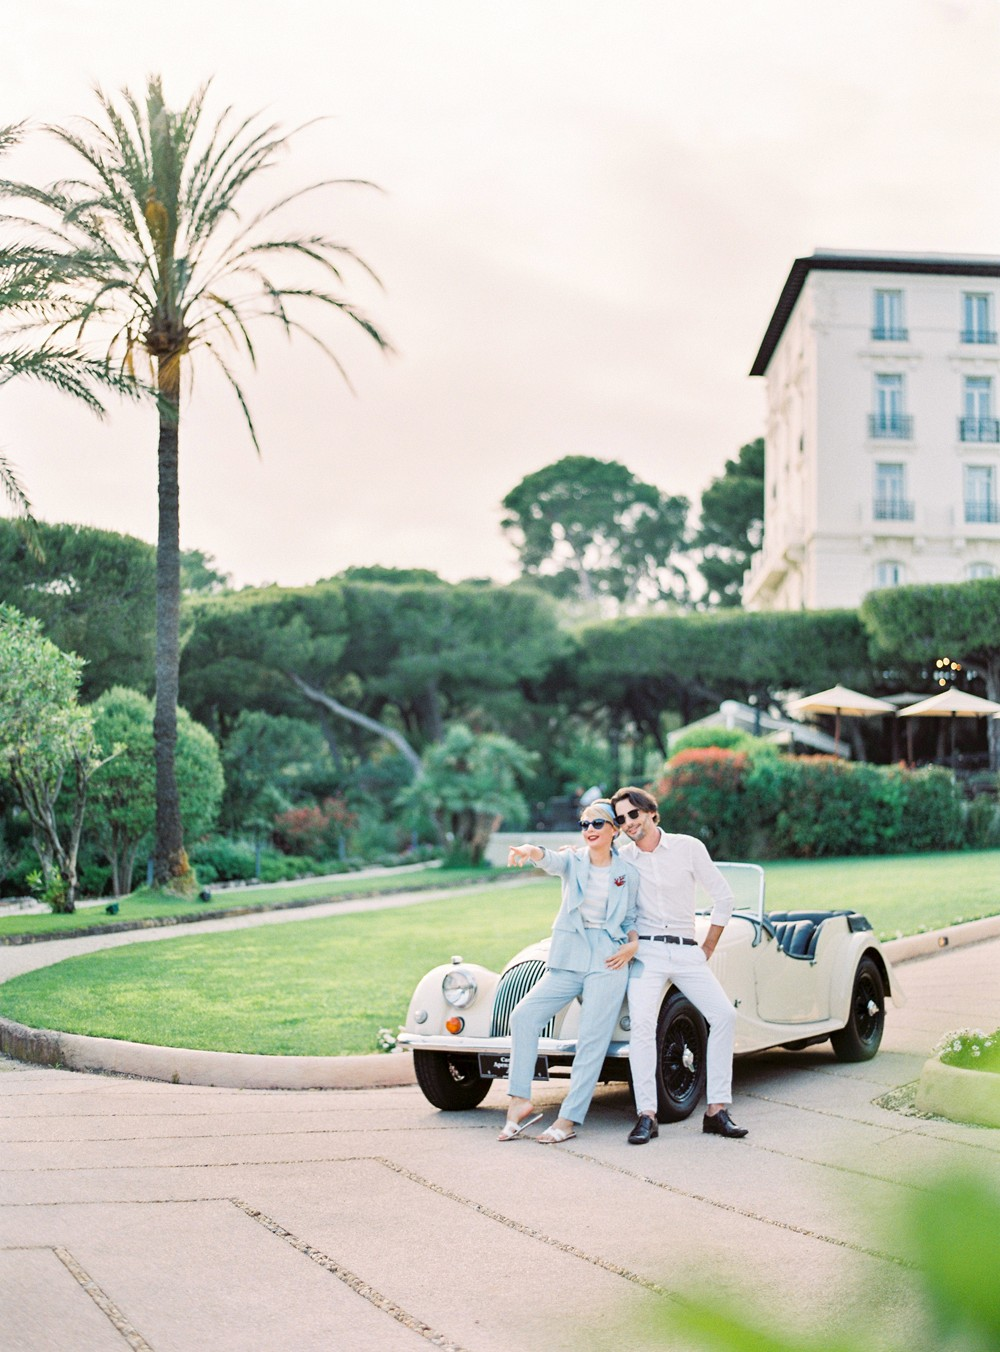 TOP 5 TIPS FOR A STYLISH HONEYMOON